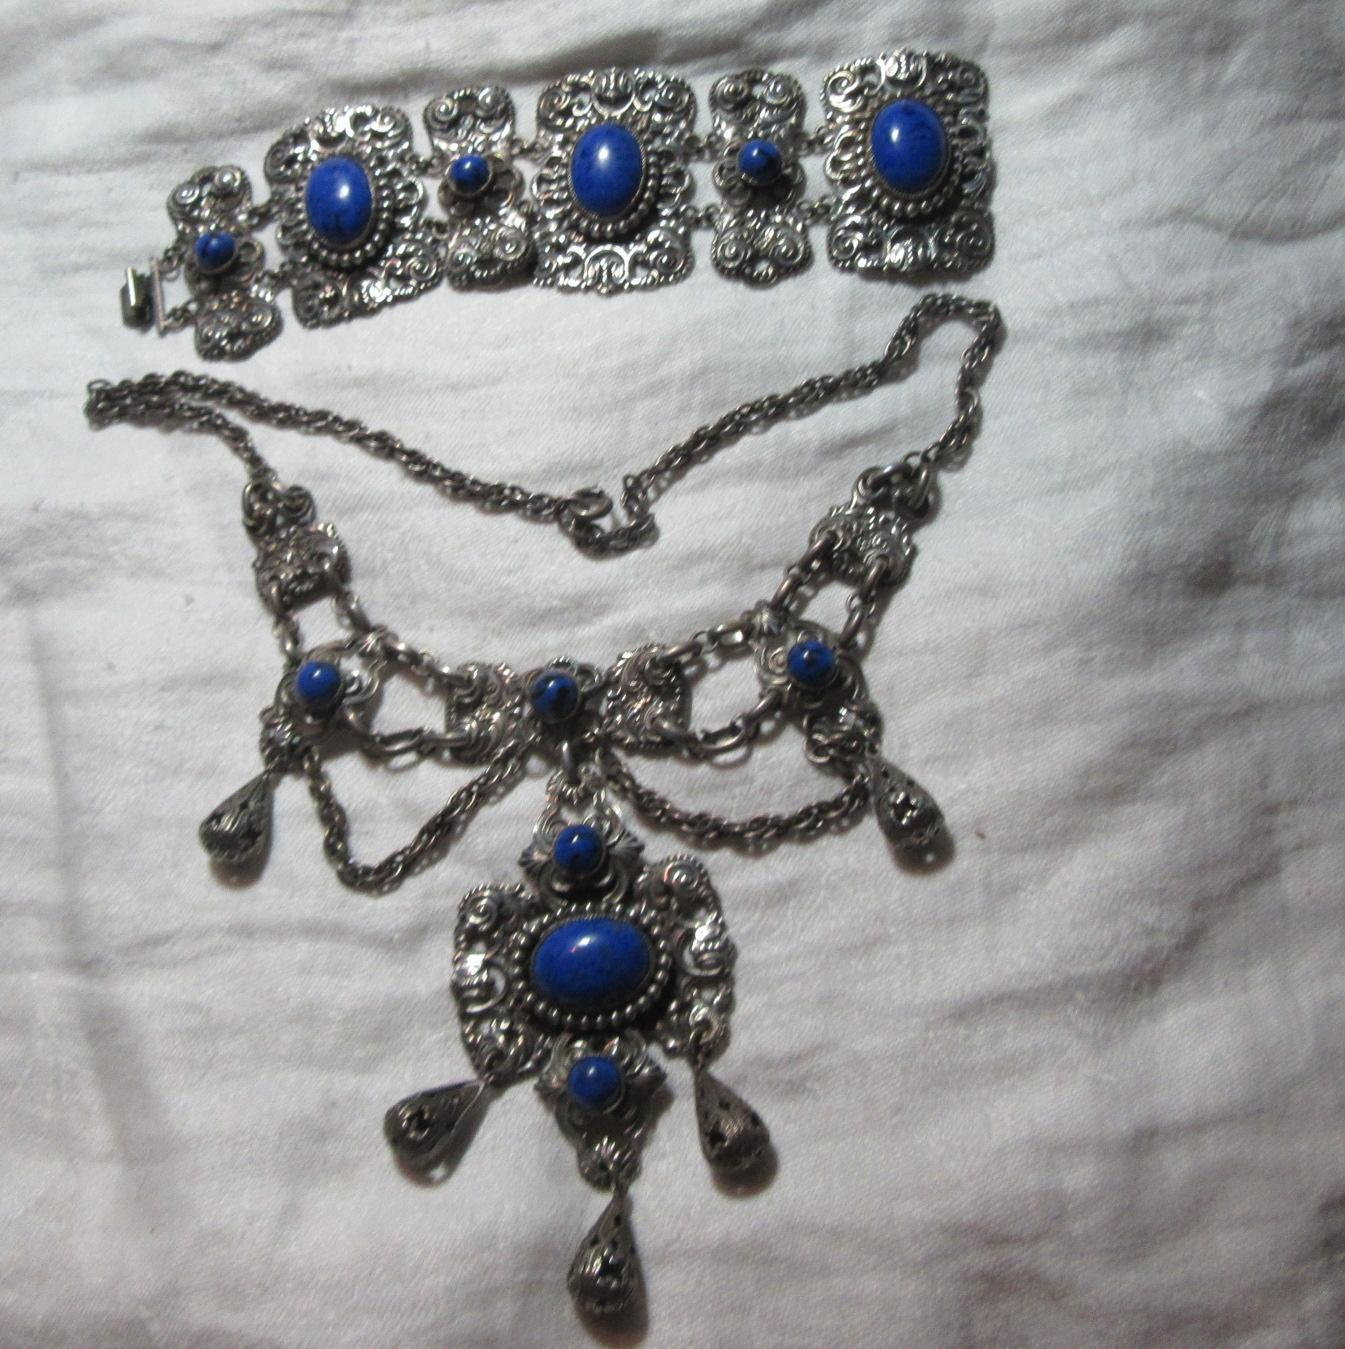 Silver Metal Festoon Necklace & Bracelet Set Fine Costume Jewelry